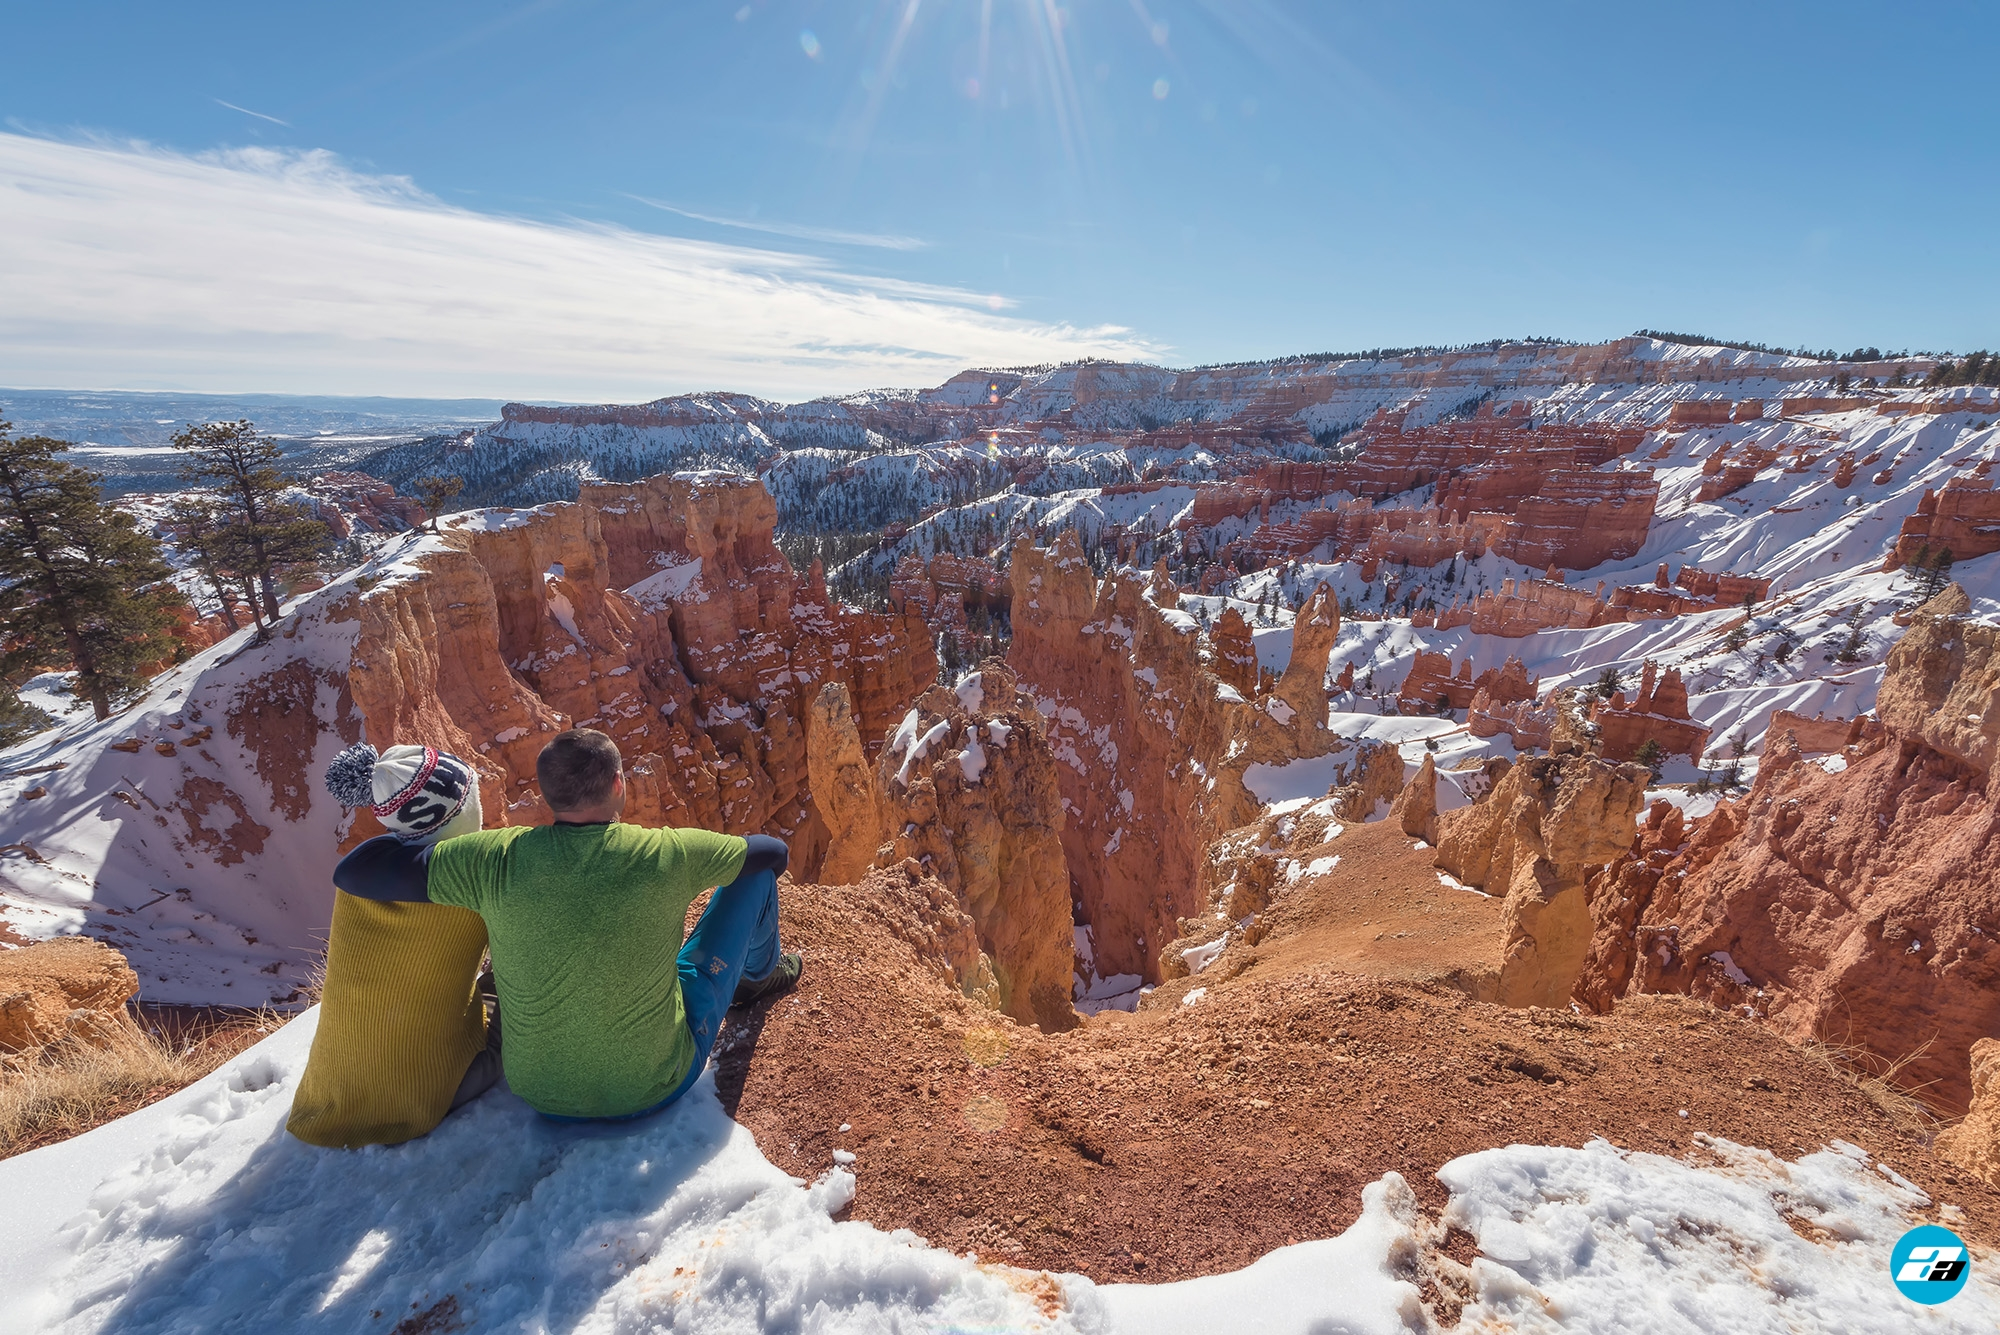 Bryce Canyon National Park, Utah, Arizona. View Point. Family. Together View. Canyon View. Winter Season.